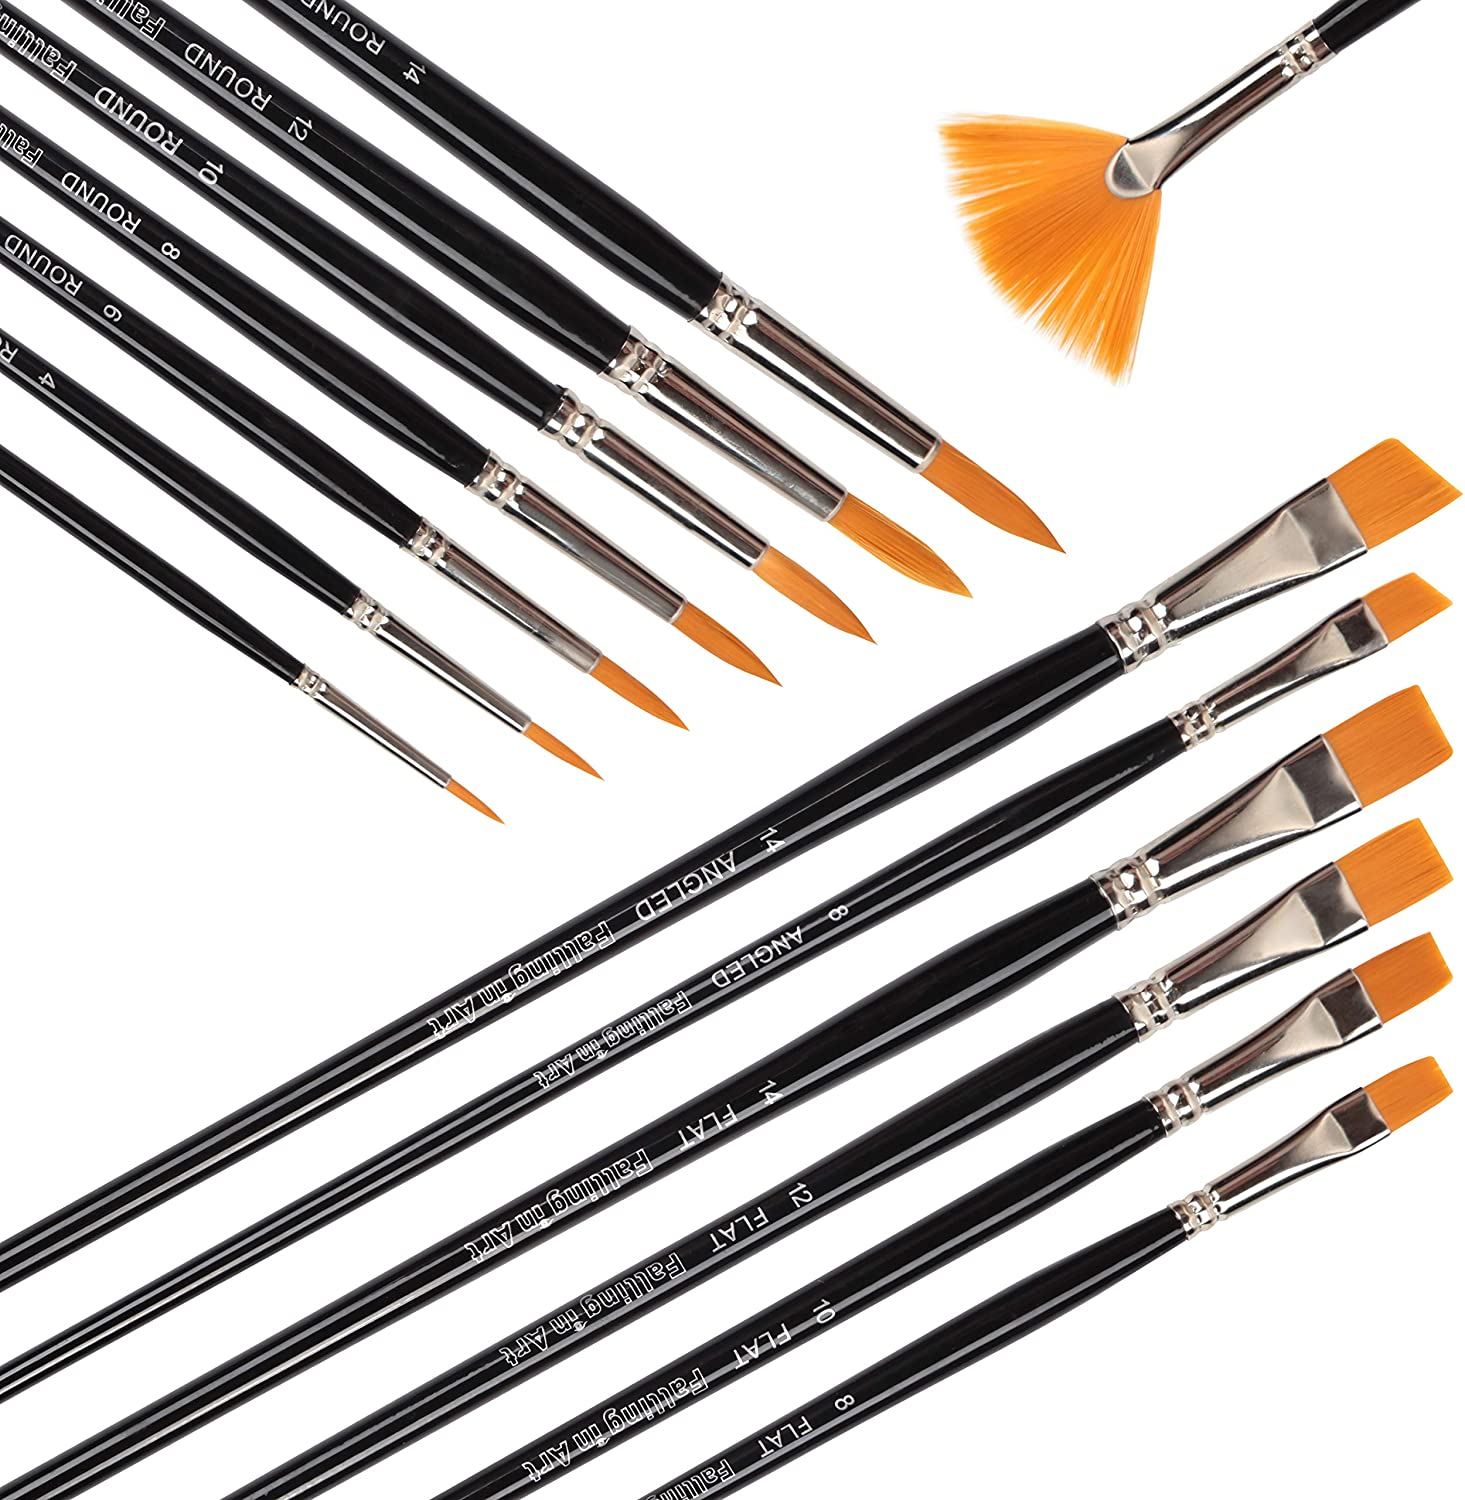 Falling in Art Long Handle Golden Art Brushes for Painting, 14 PCS Nylon Paint Brushes Set with Fan, Angled, Flat and Round Head for Acrylic, Oil or Watercolor